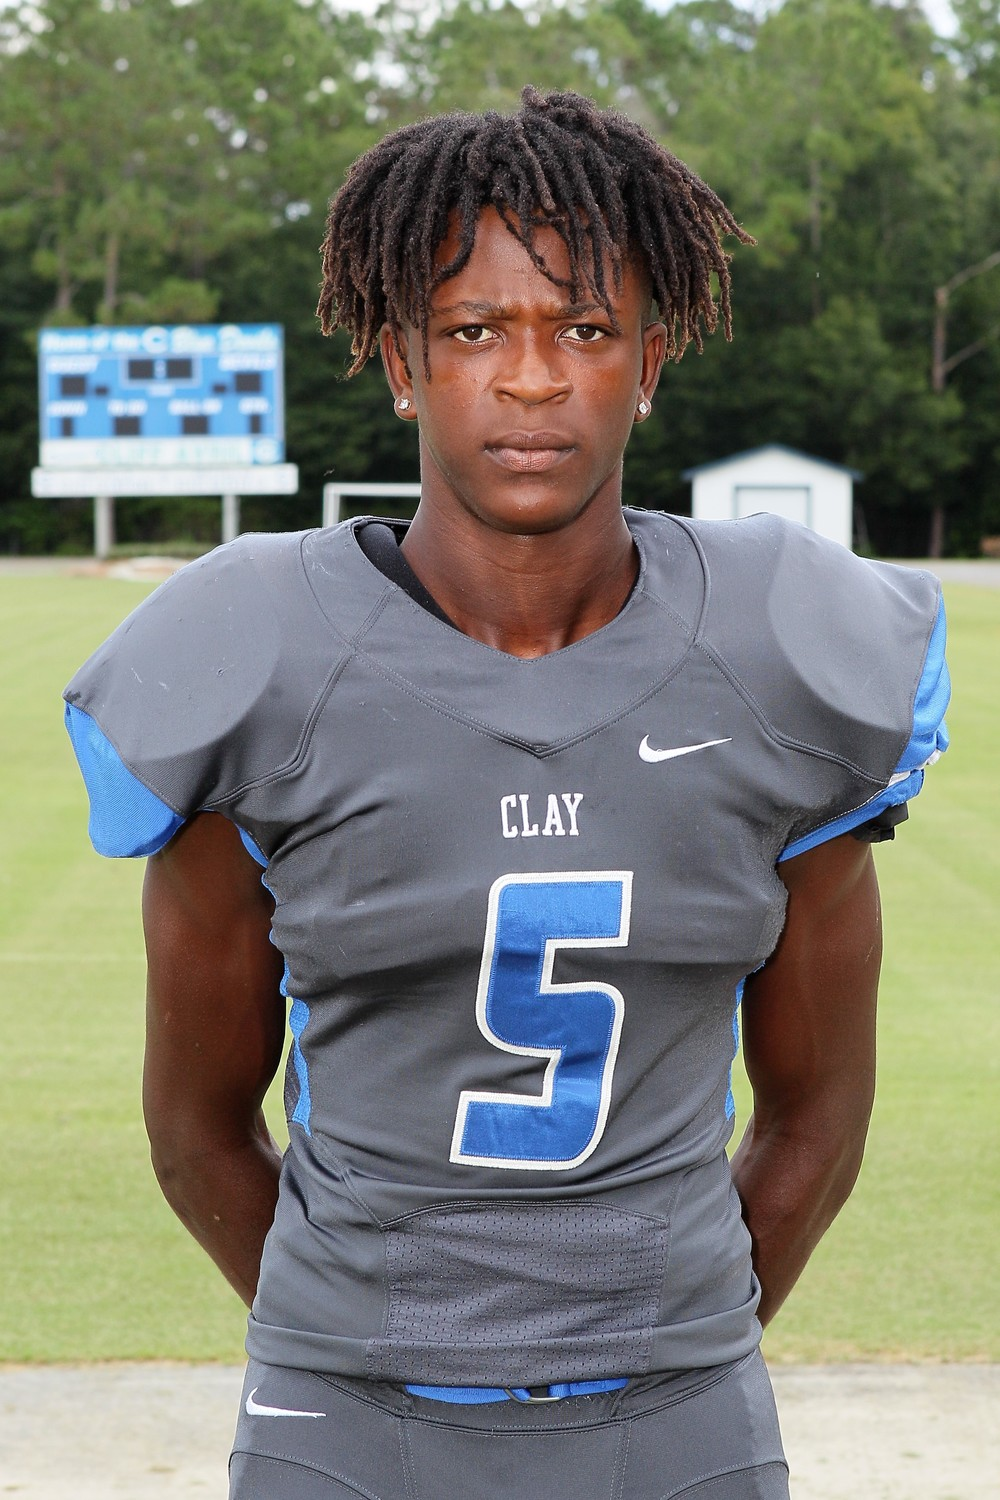 OFFENSE: Cedrick Brown, Senior, RB, Clay High. Brown rushed for 250 yards with three scores;  80 yards, 12 yards and 45 yards as well as a 45 yard kickoff return in the Blue Devils' 49-47 district loss to Pedro Menendez High School.